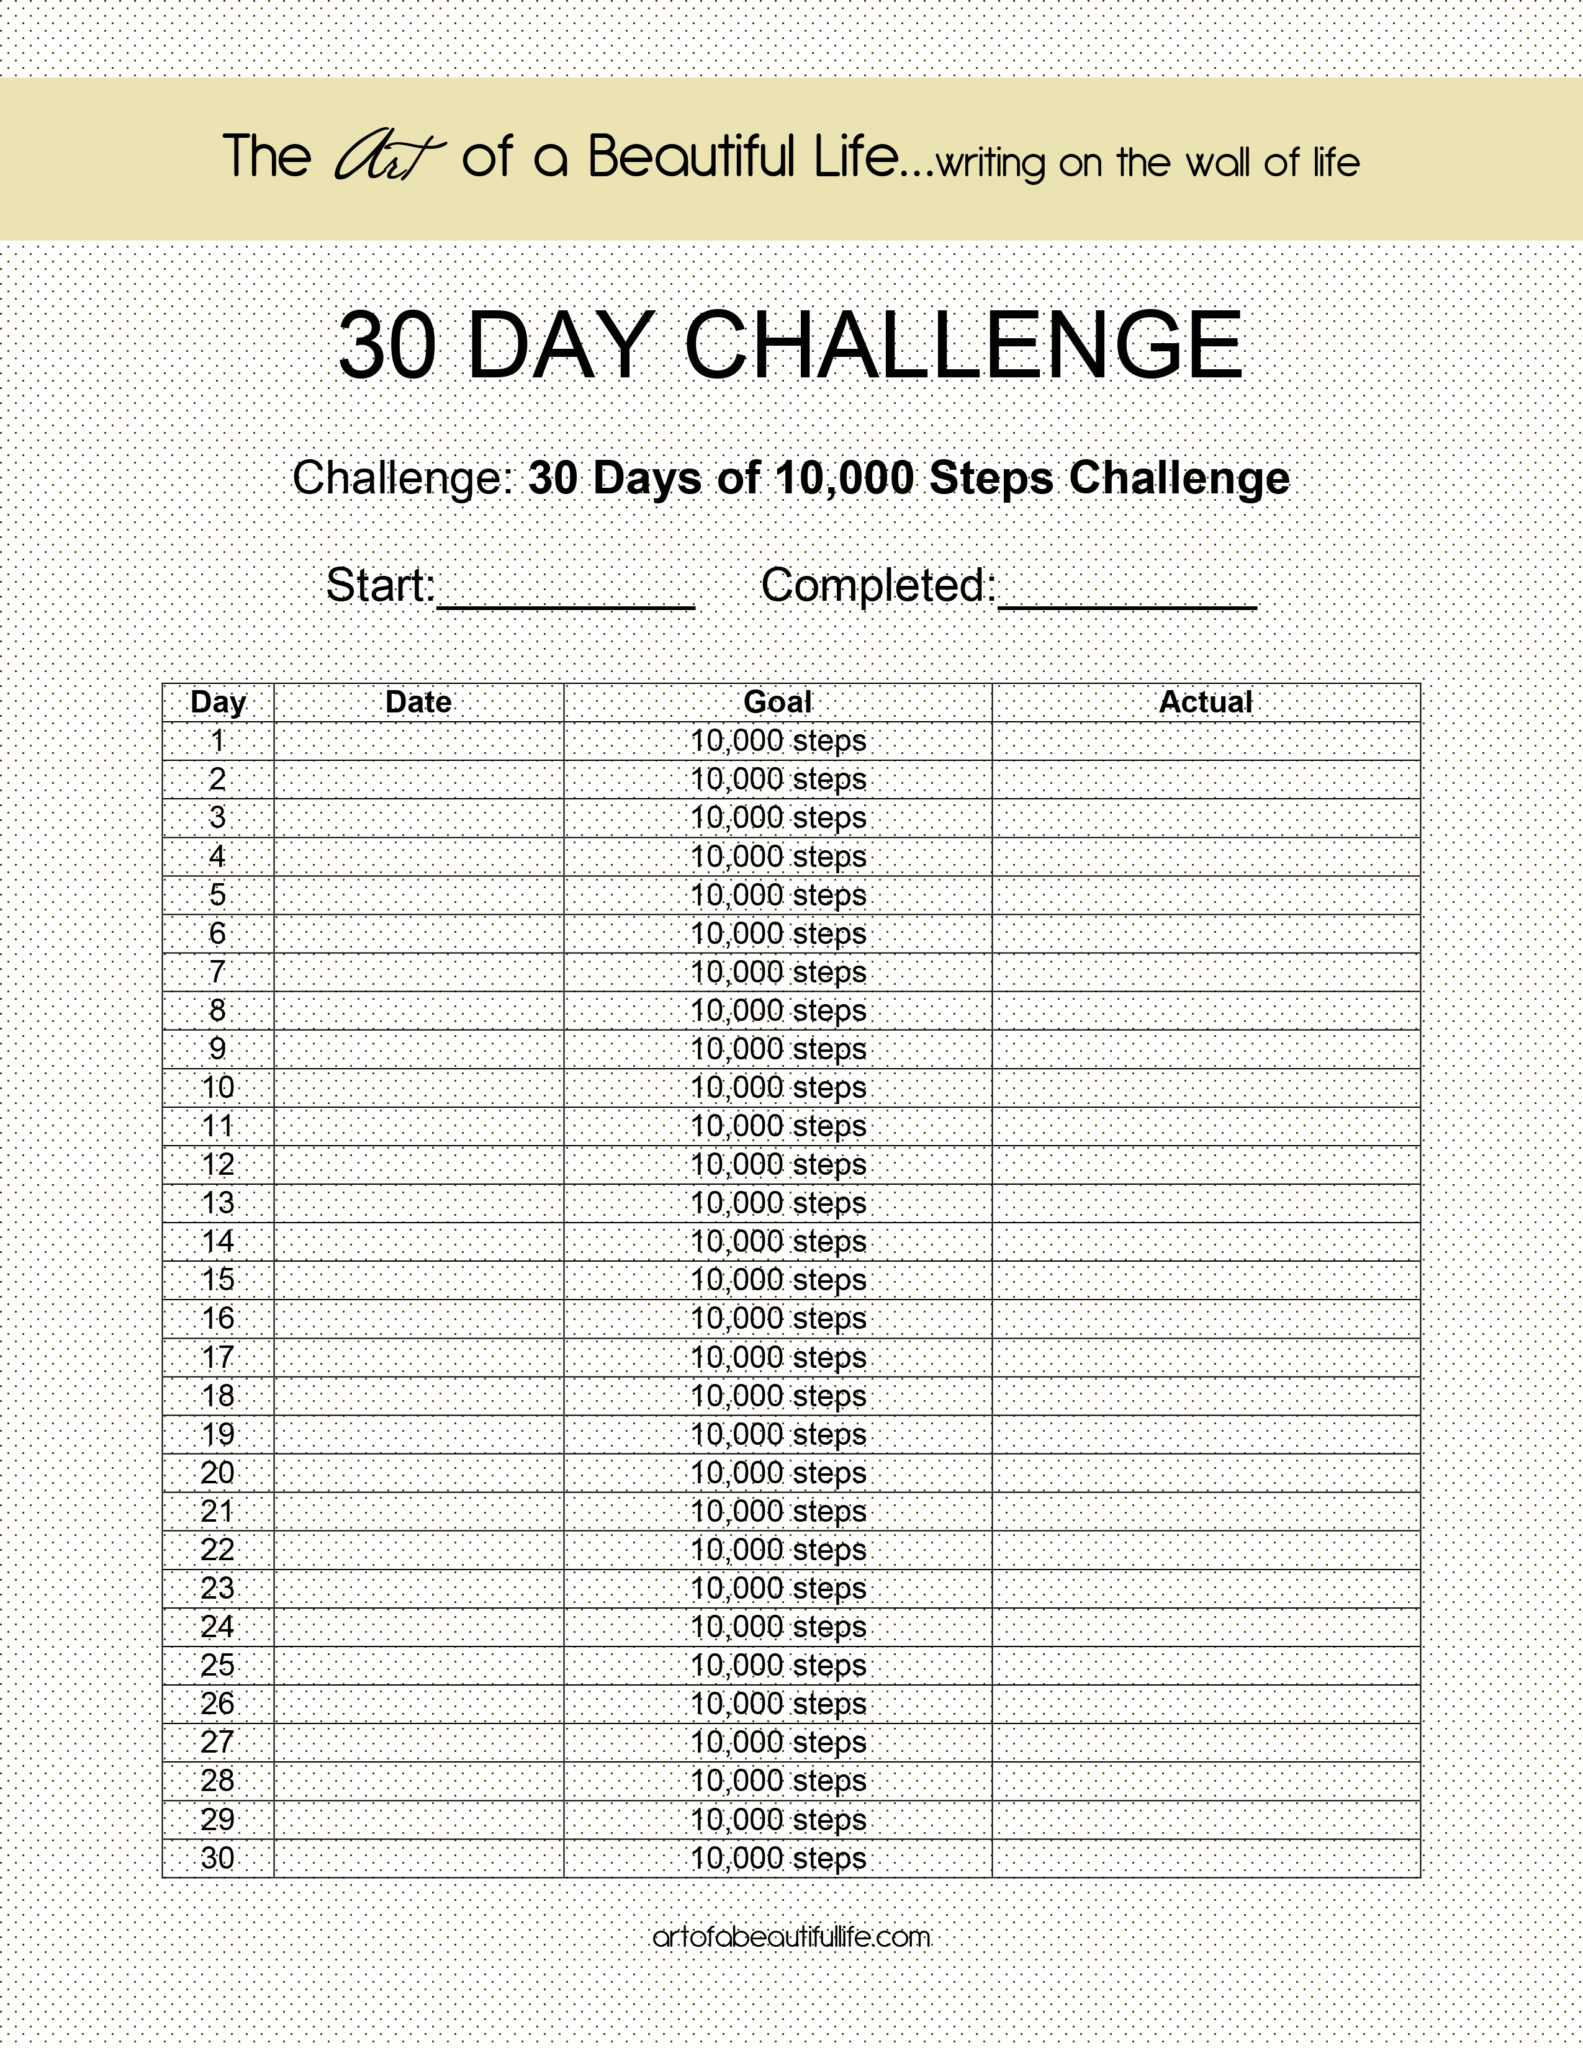 graphic regarding 30 Day Challenge Printable titled Totally free Printable 30 Working day Concern Sheets - The Artwork of a